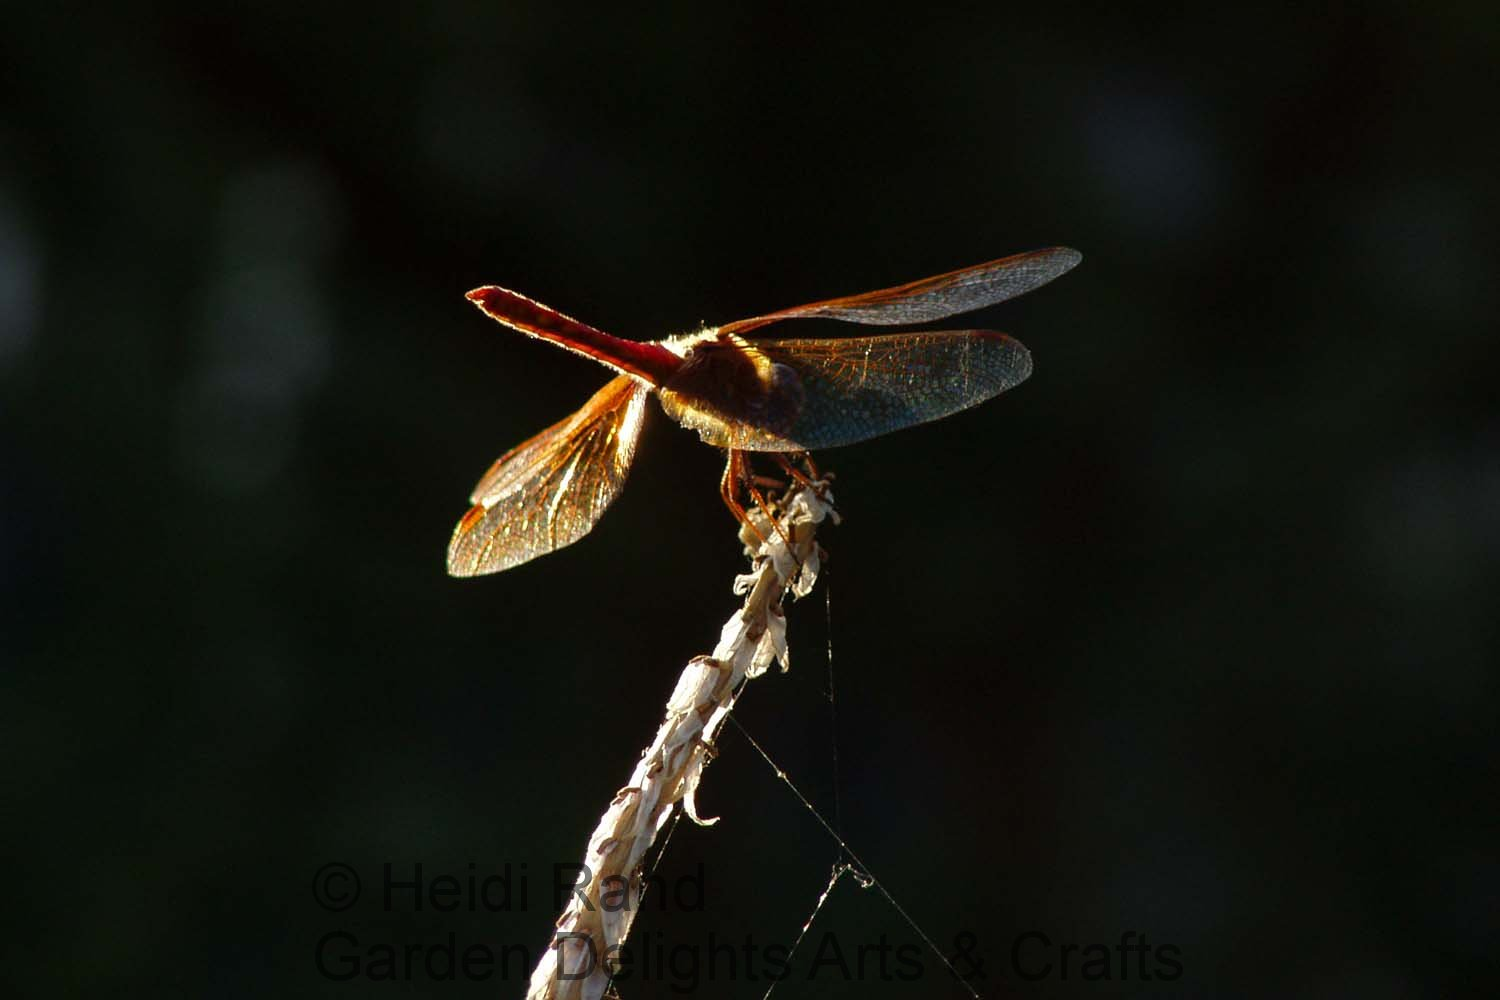 Scarlet darter dragonfly glowing